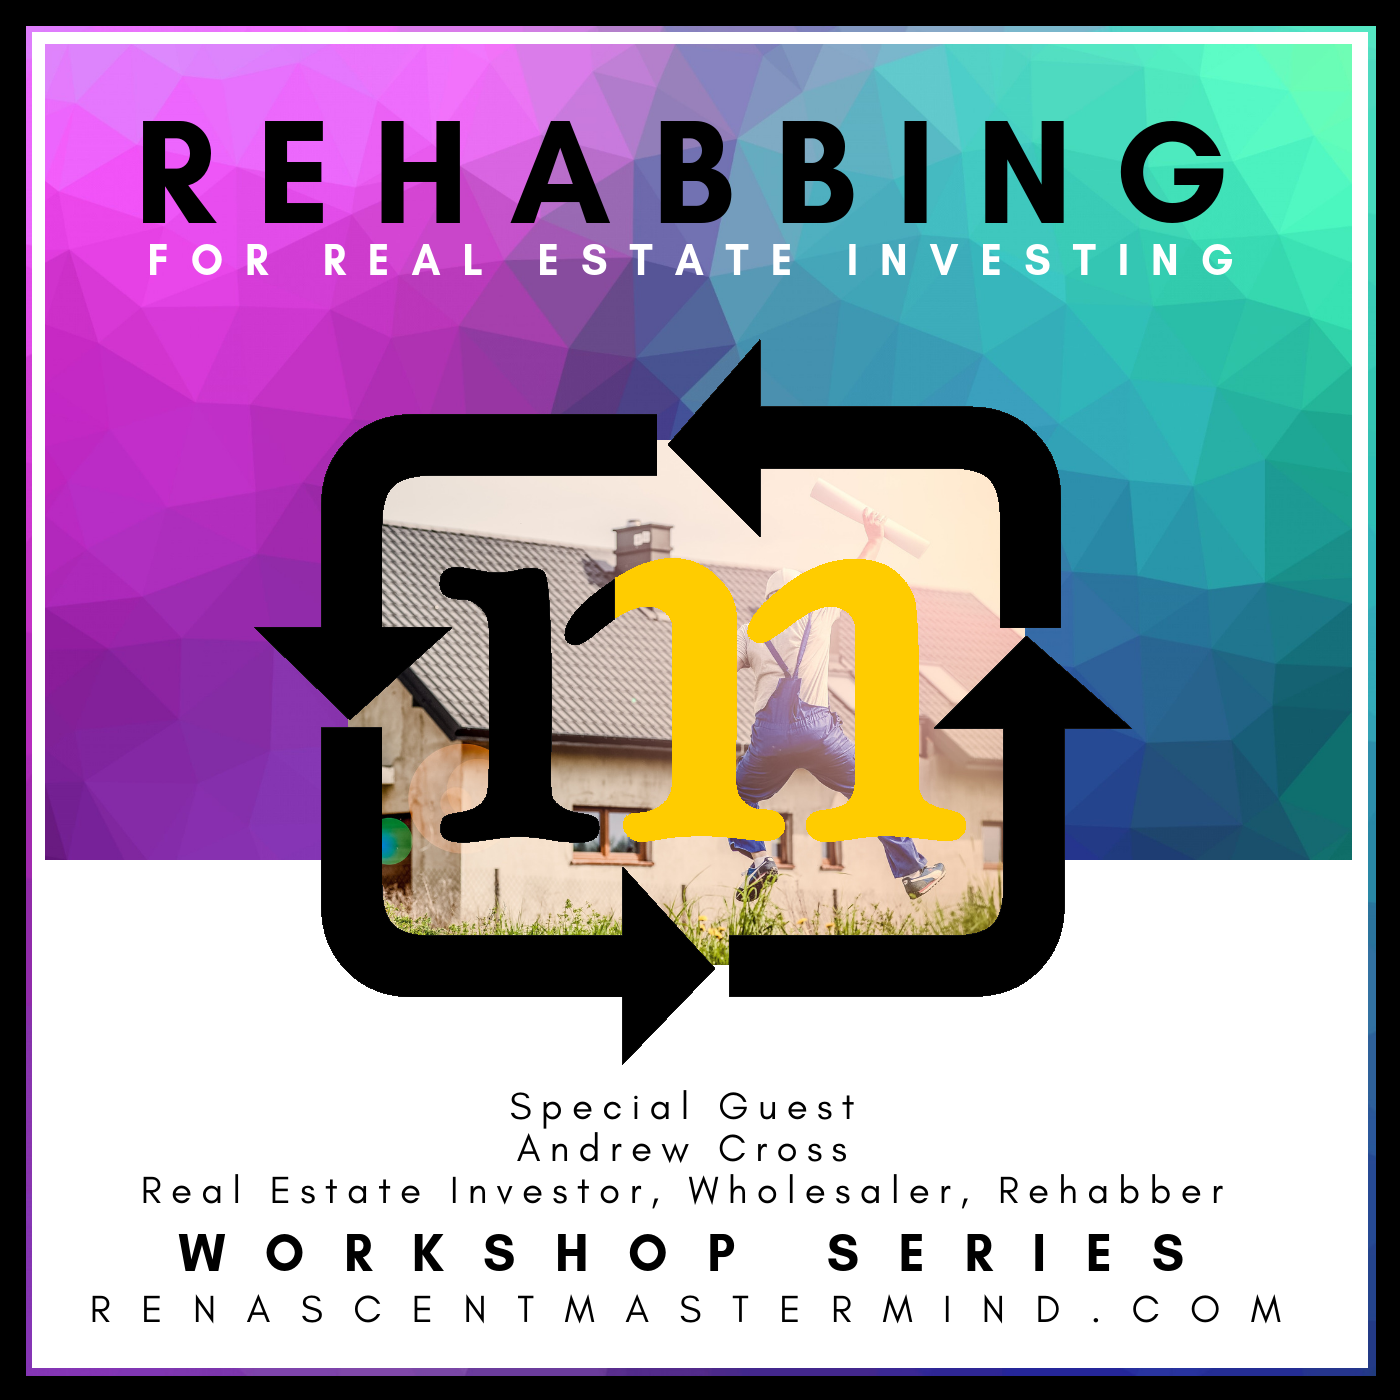 Copy of Rehabbing for Real Estate Investing | Workshop Series